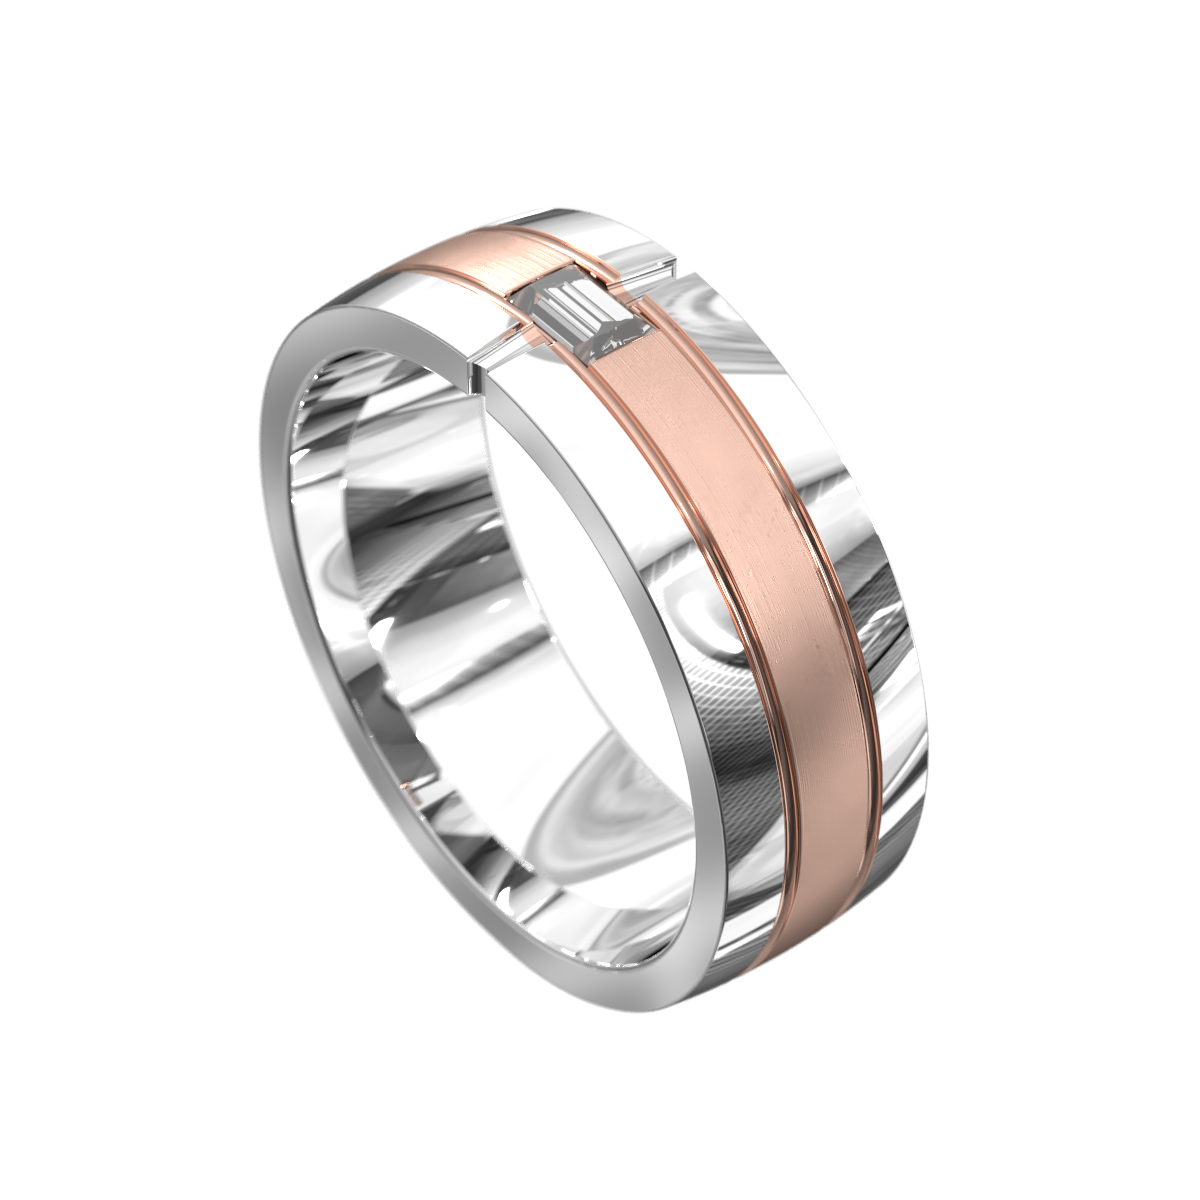 Polished White and Rose Gold Mens Ring